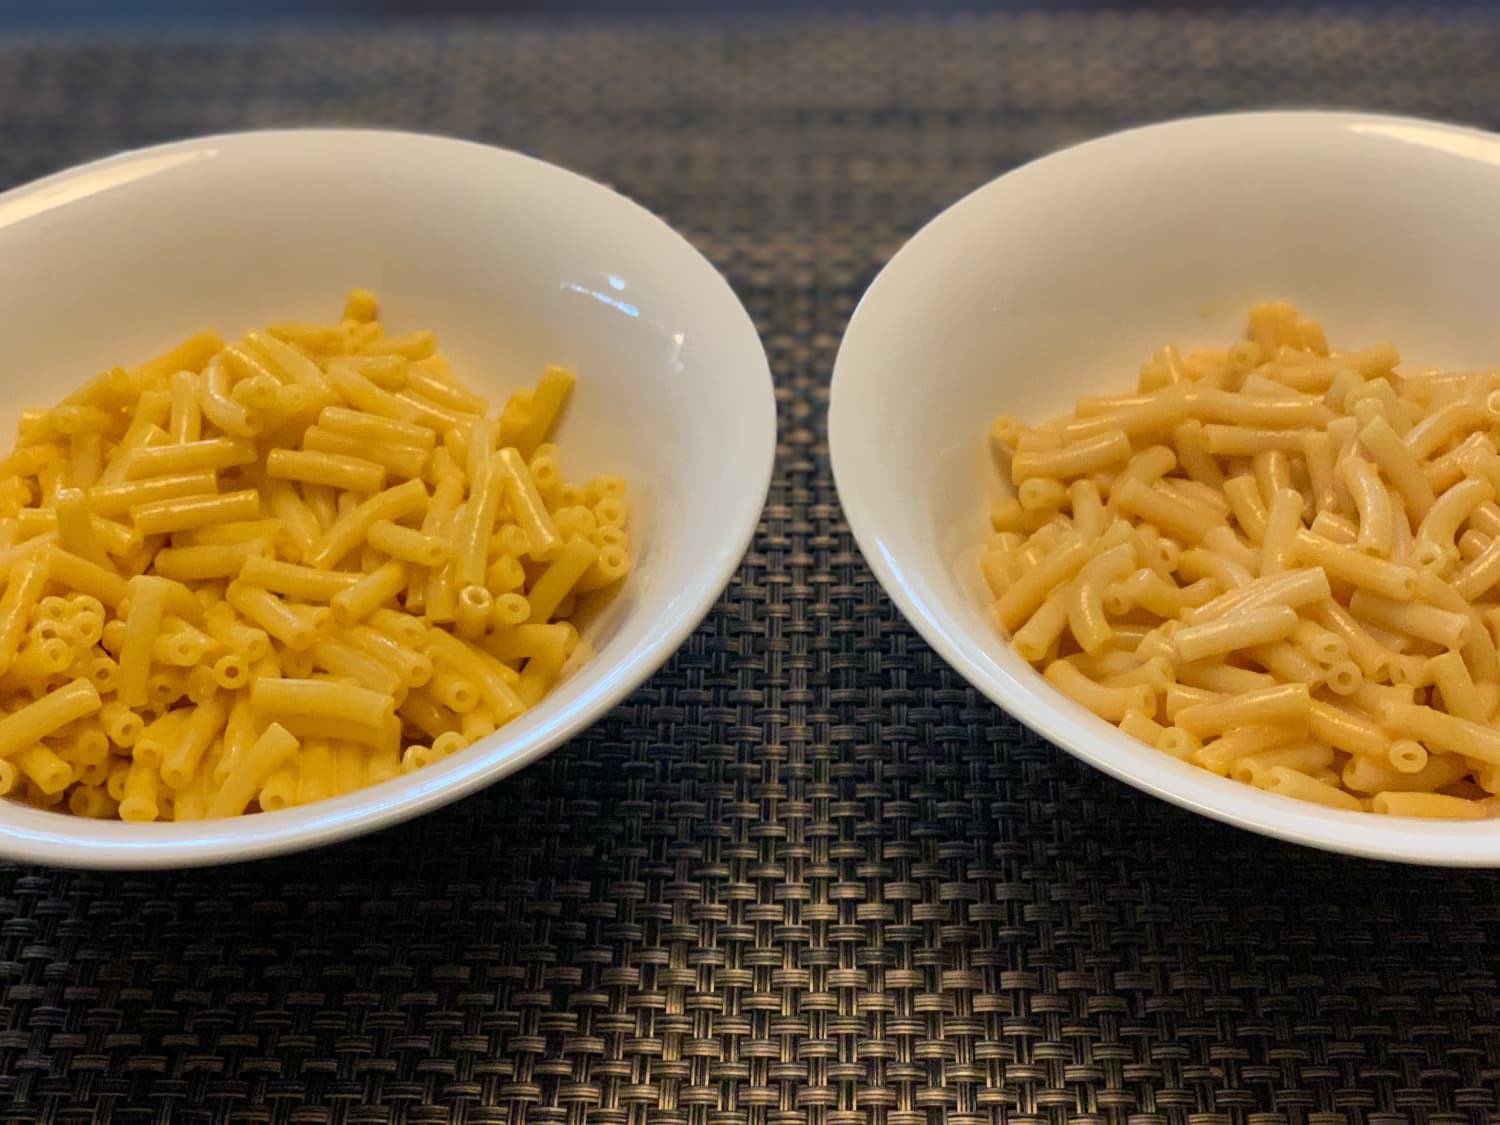 Trader Joe's Mac & Cheese Supposedly Tastes Just Like Annie's. We Compared the Two.